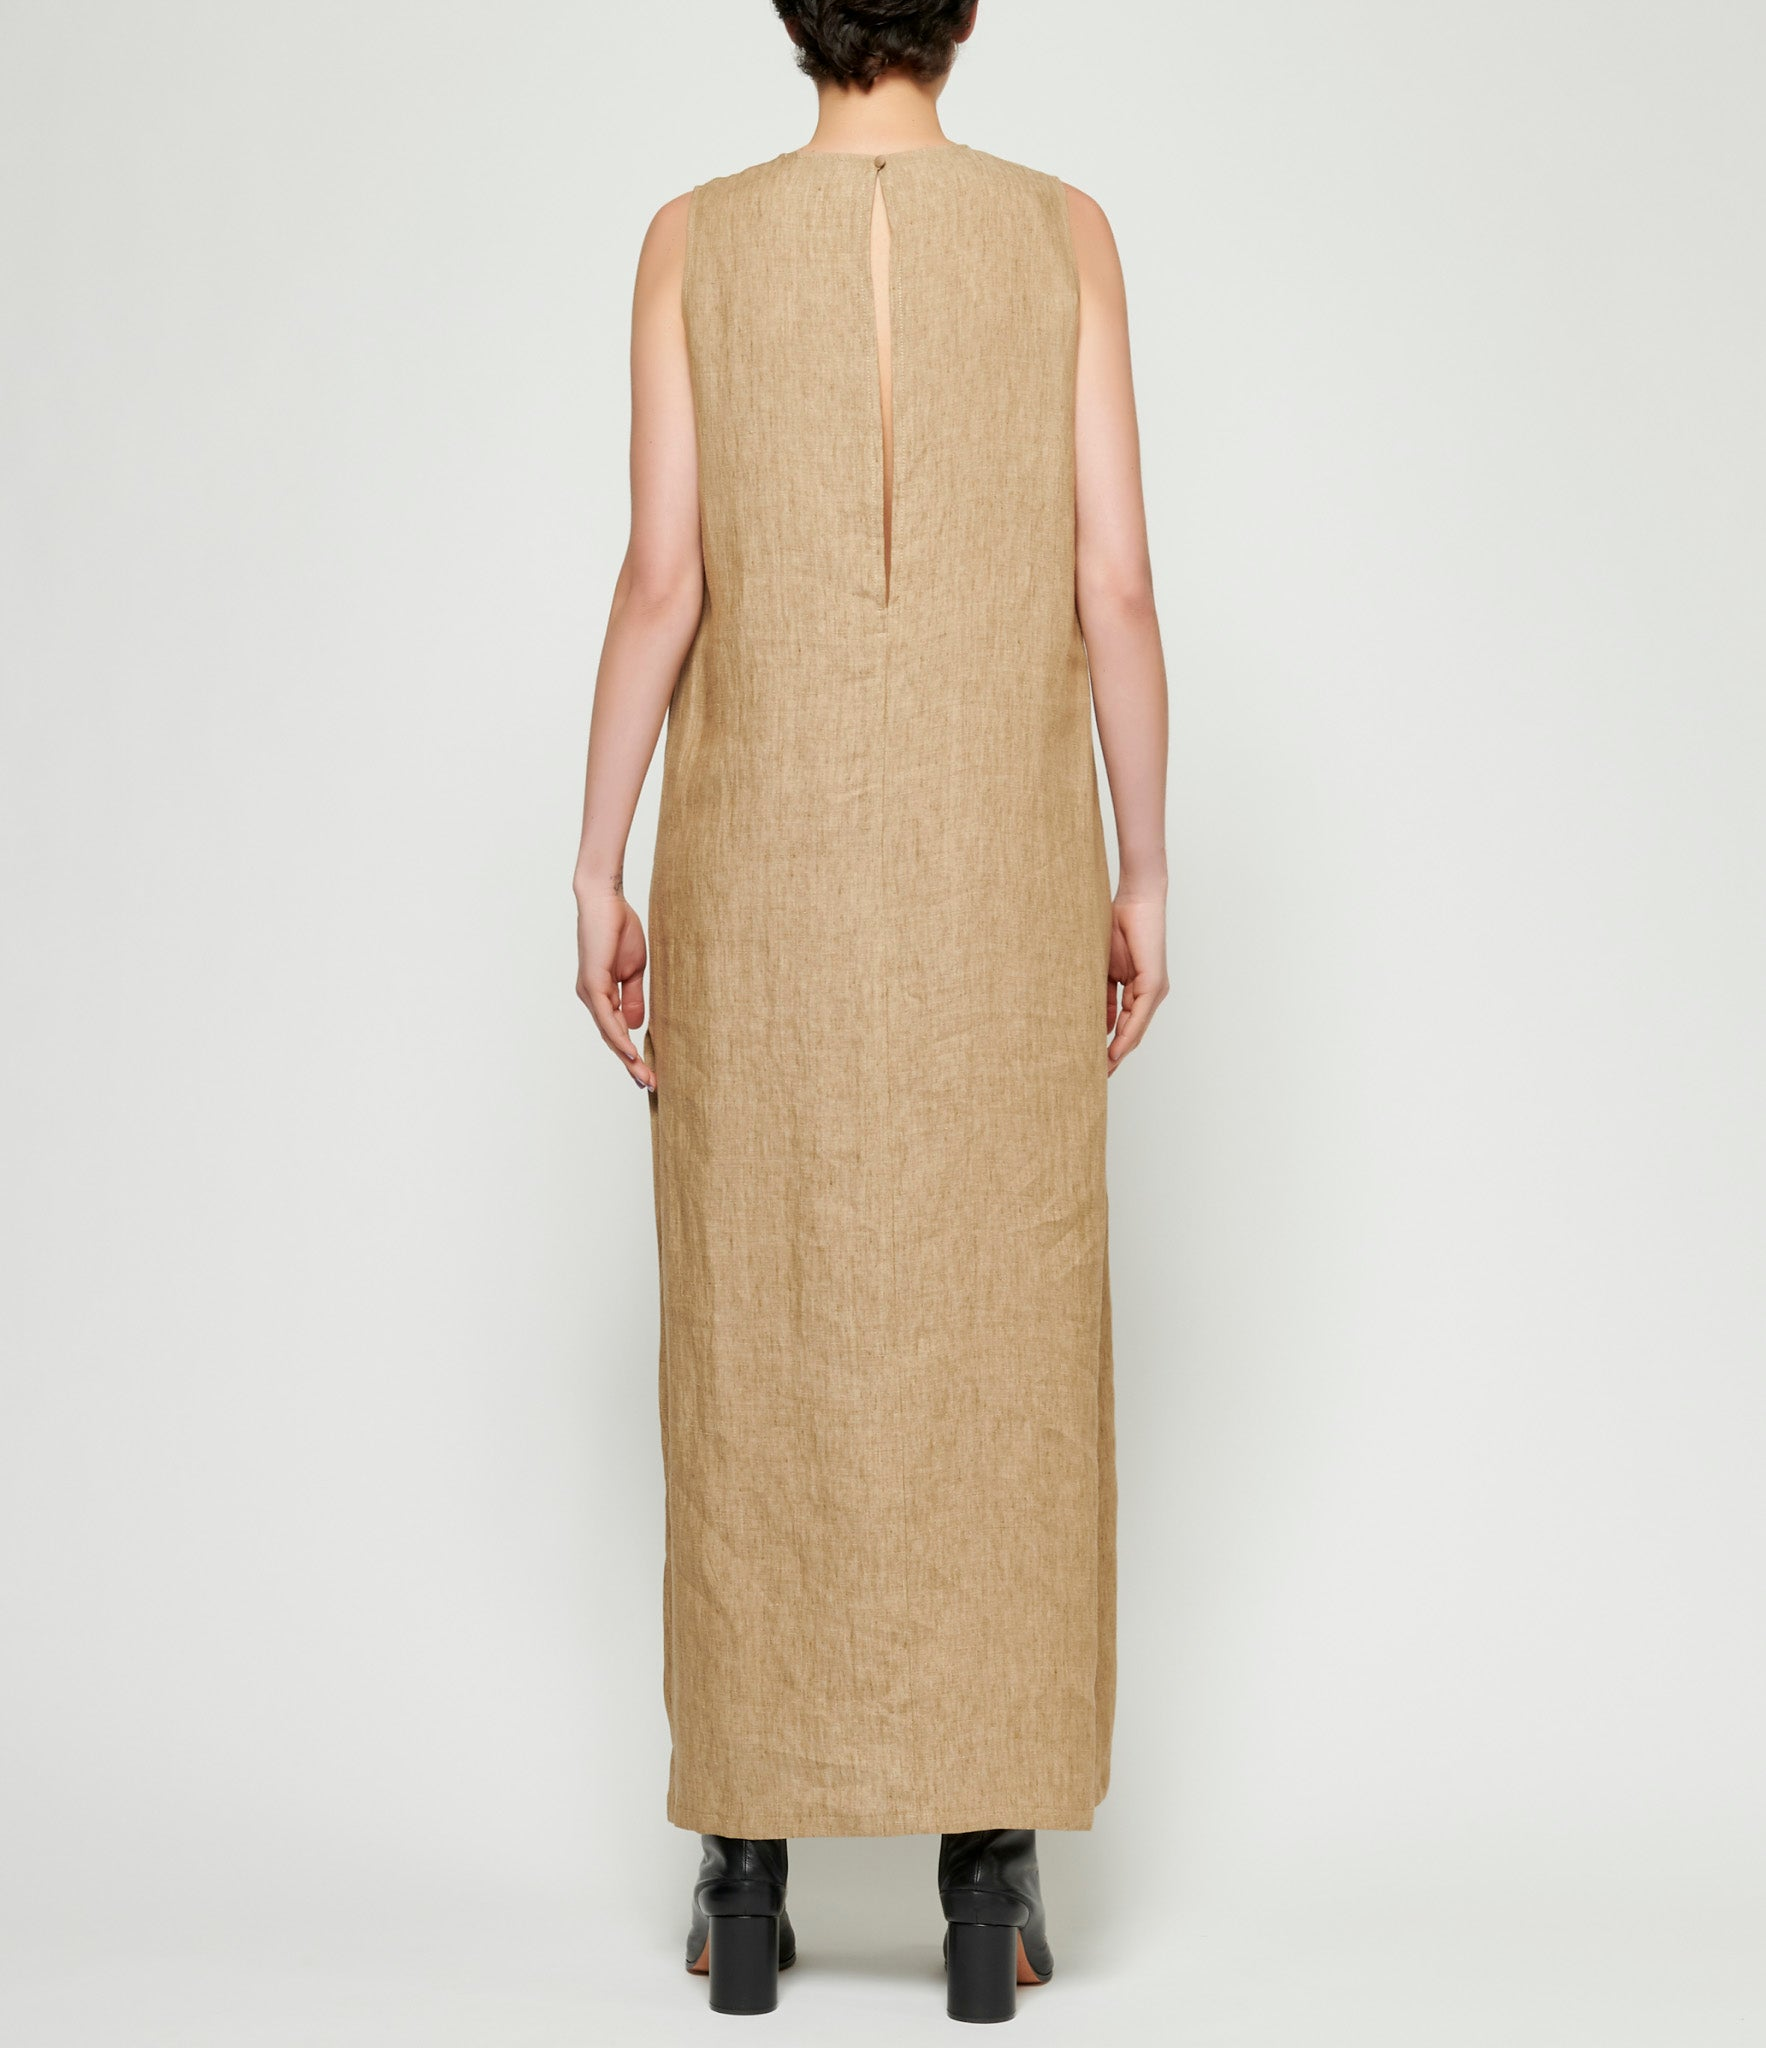 Sartorial Monk Linen Sleeveless Column Dress